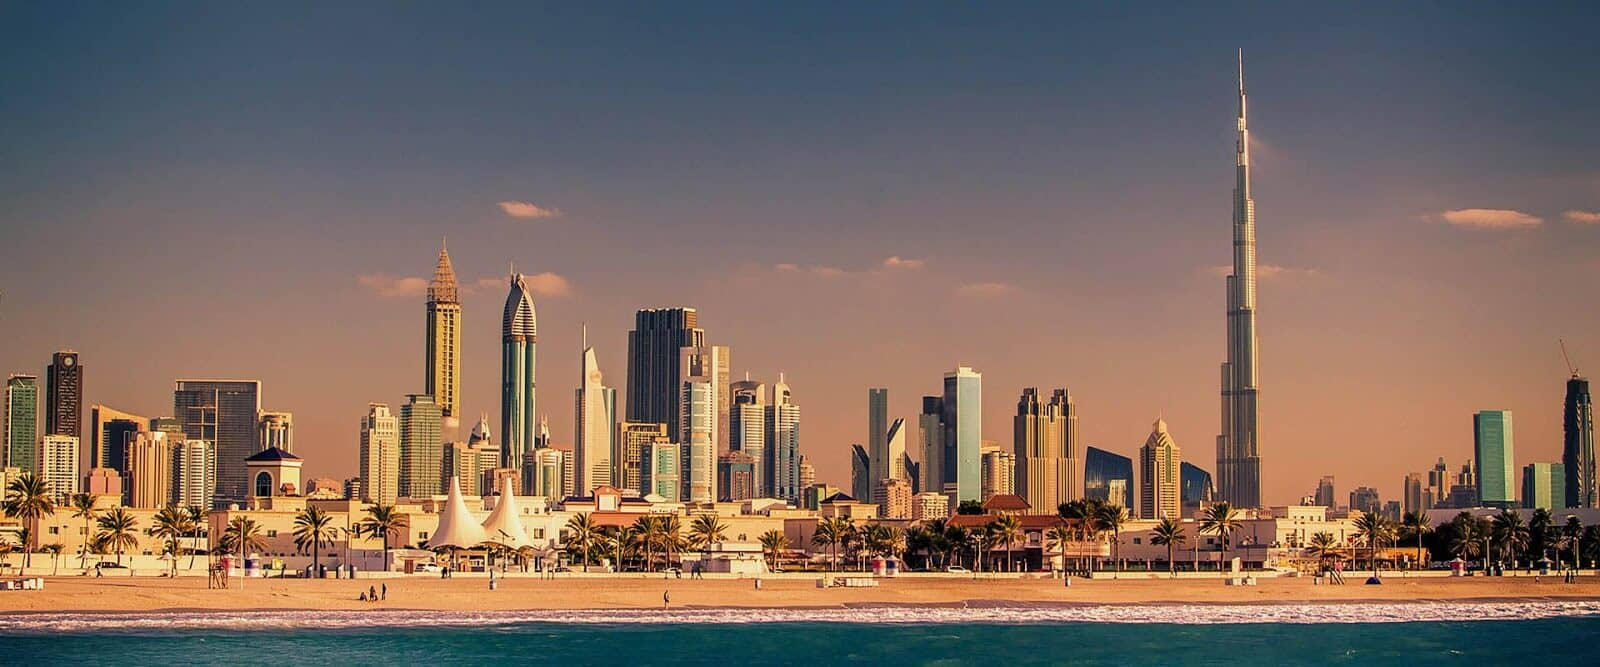 Dubai Issues 1,221 New Trade Licences Only In August